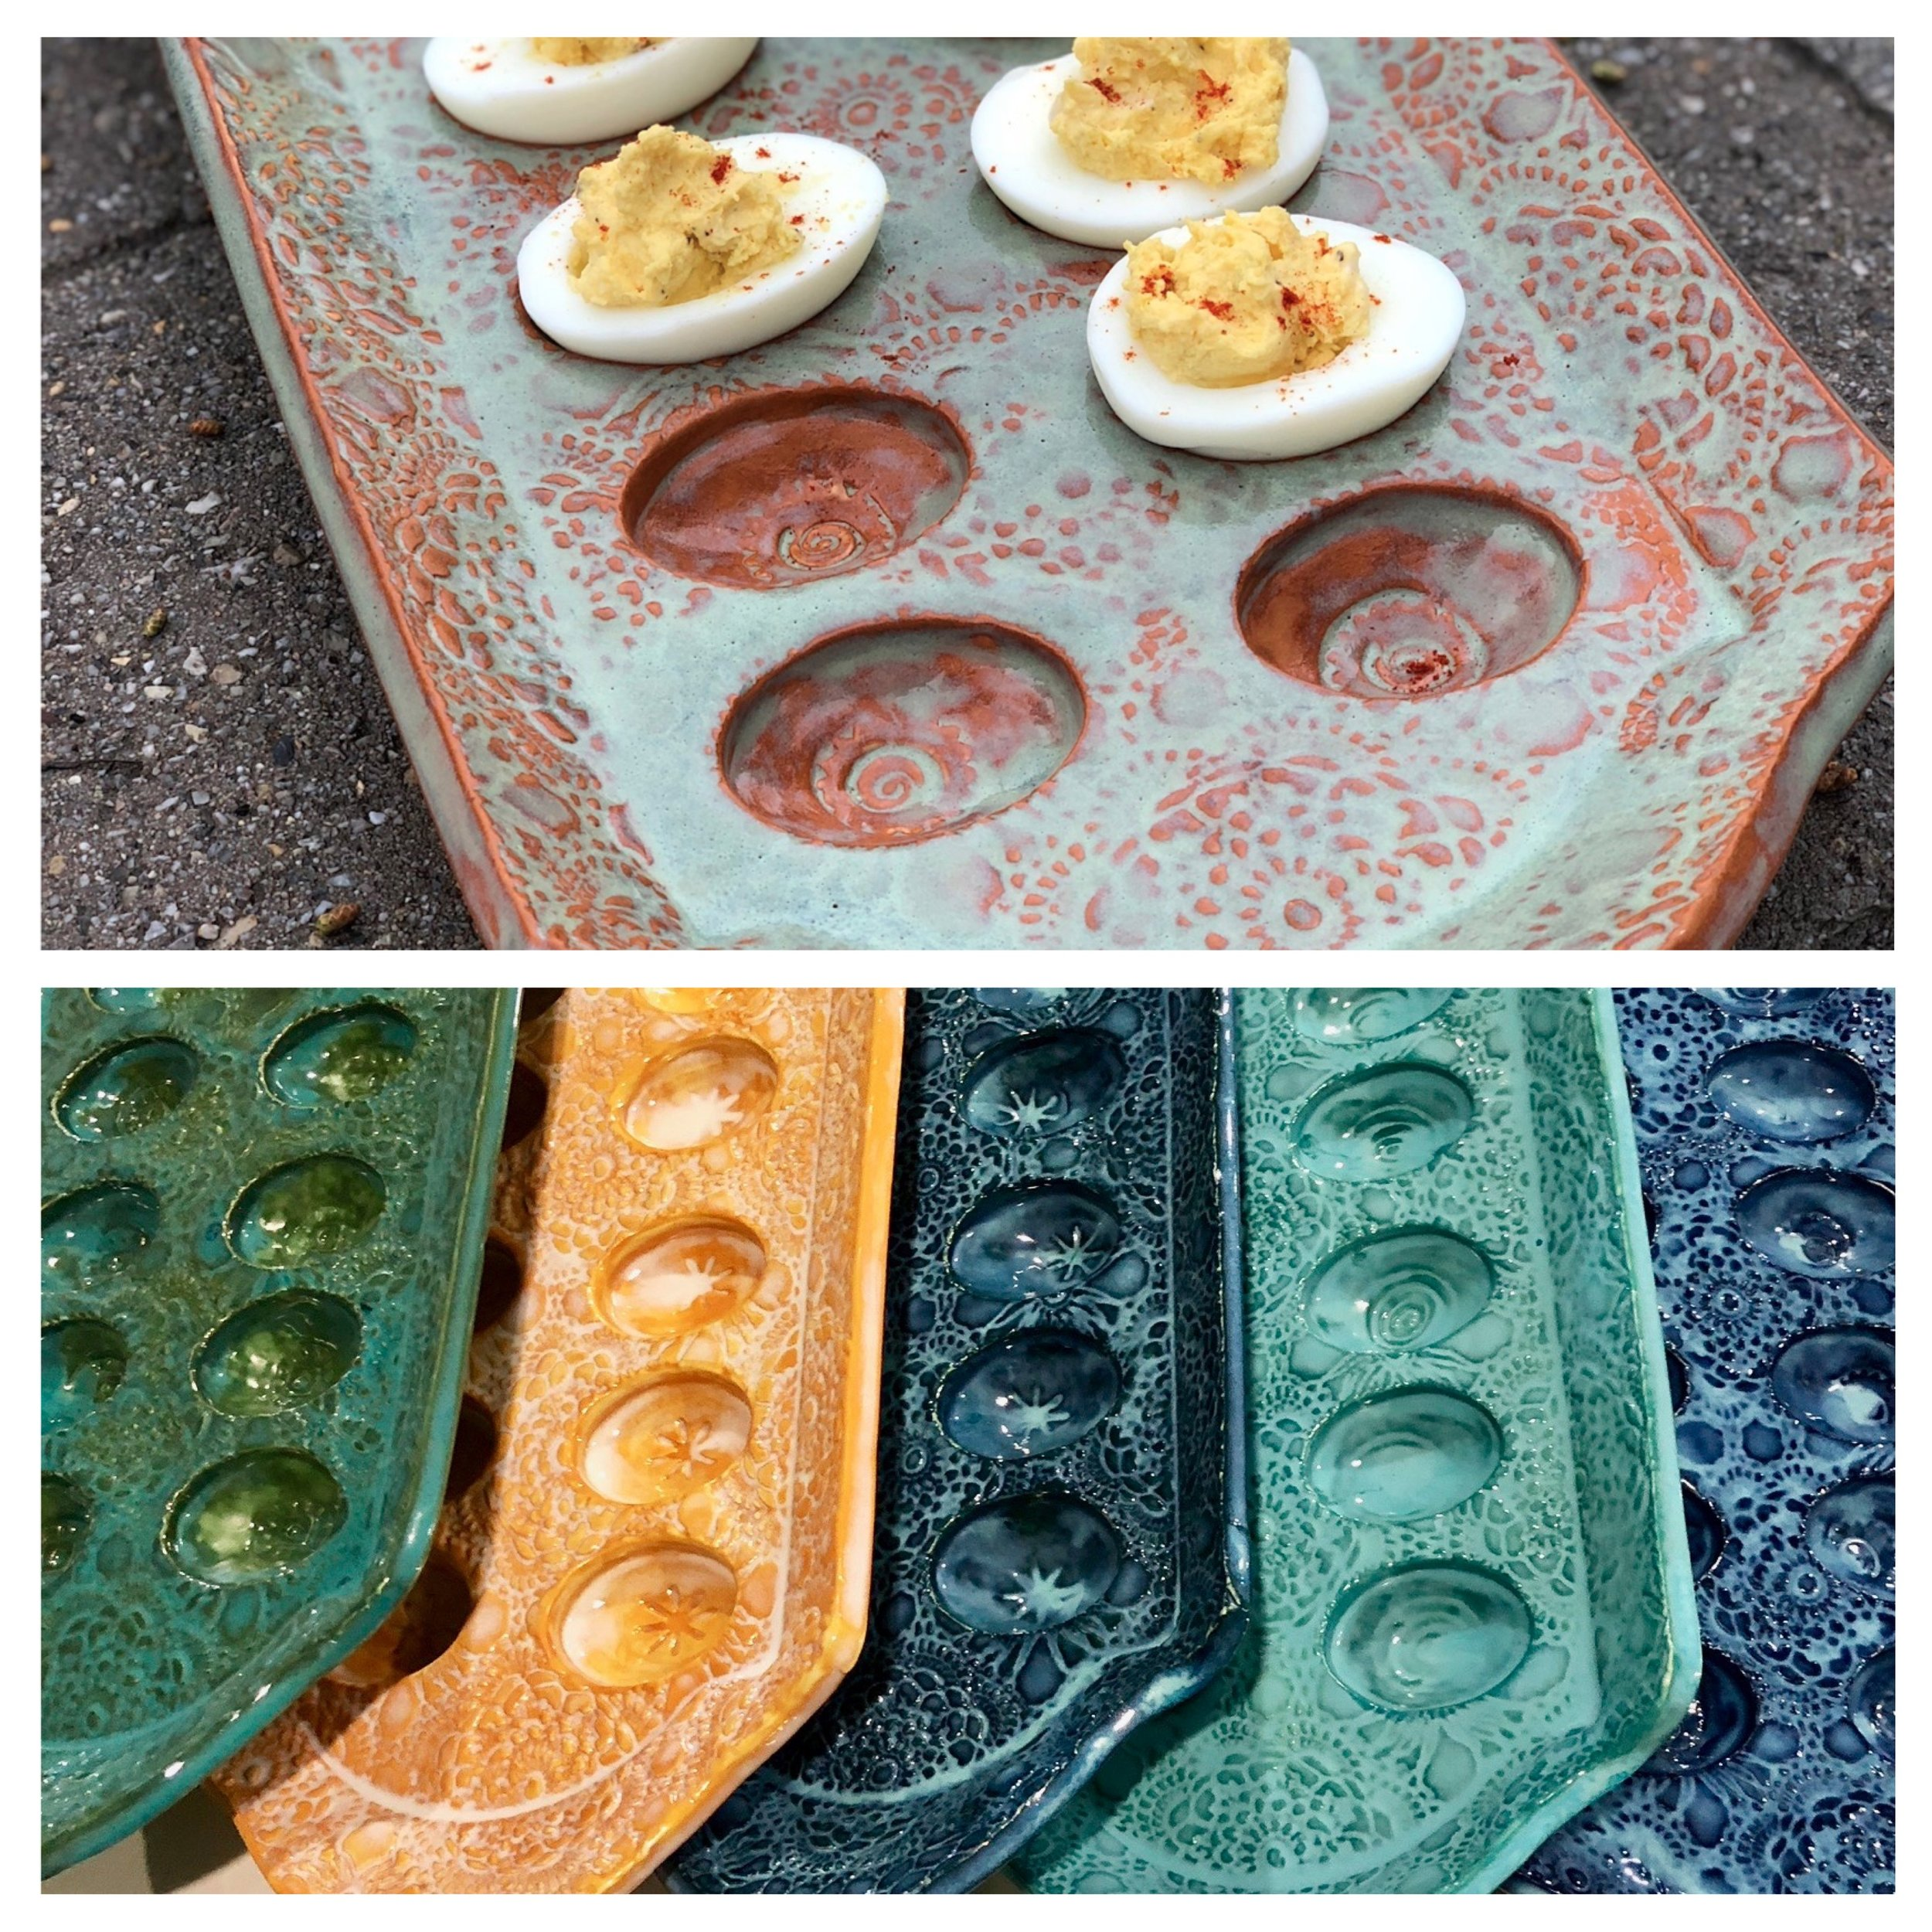 One of my new Huntsville, Alabama friends asked me to create a deviled egg tray. I fiddled around with a couple of designs before developing this shape. We are both really happy with the end result.